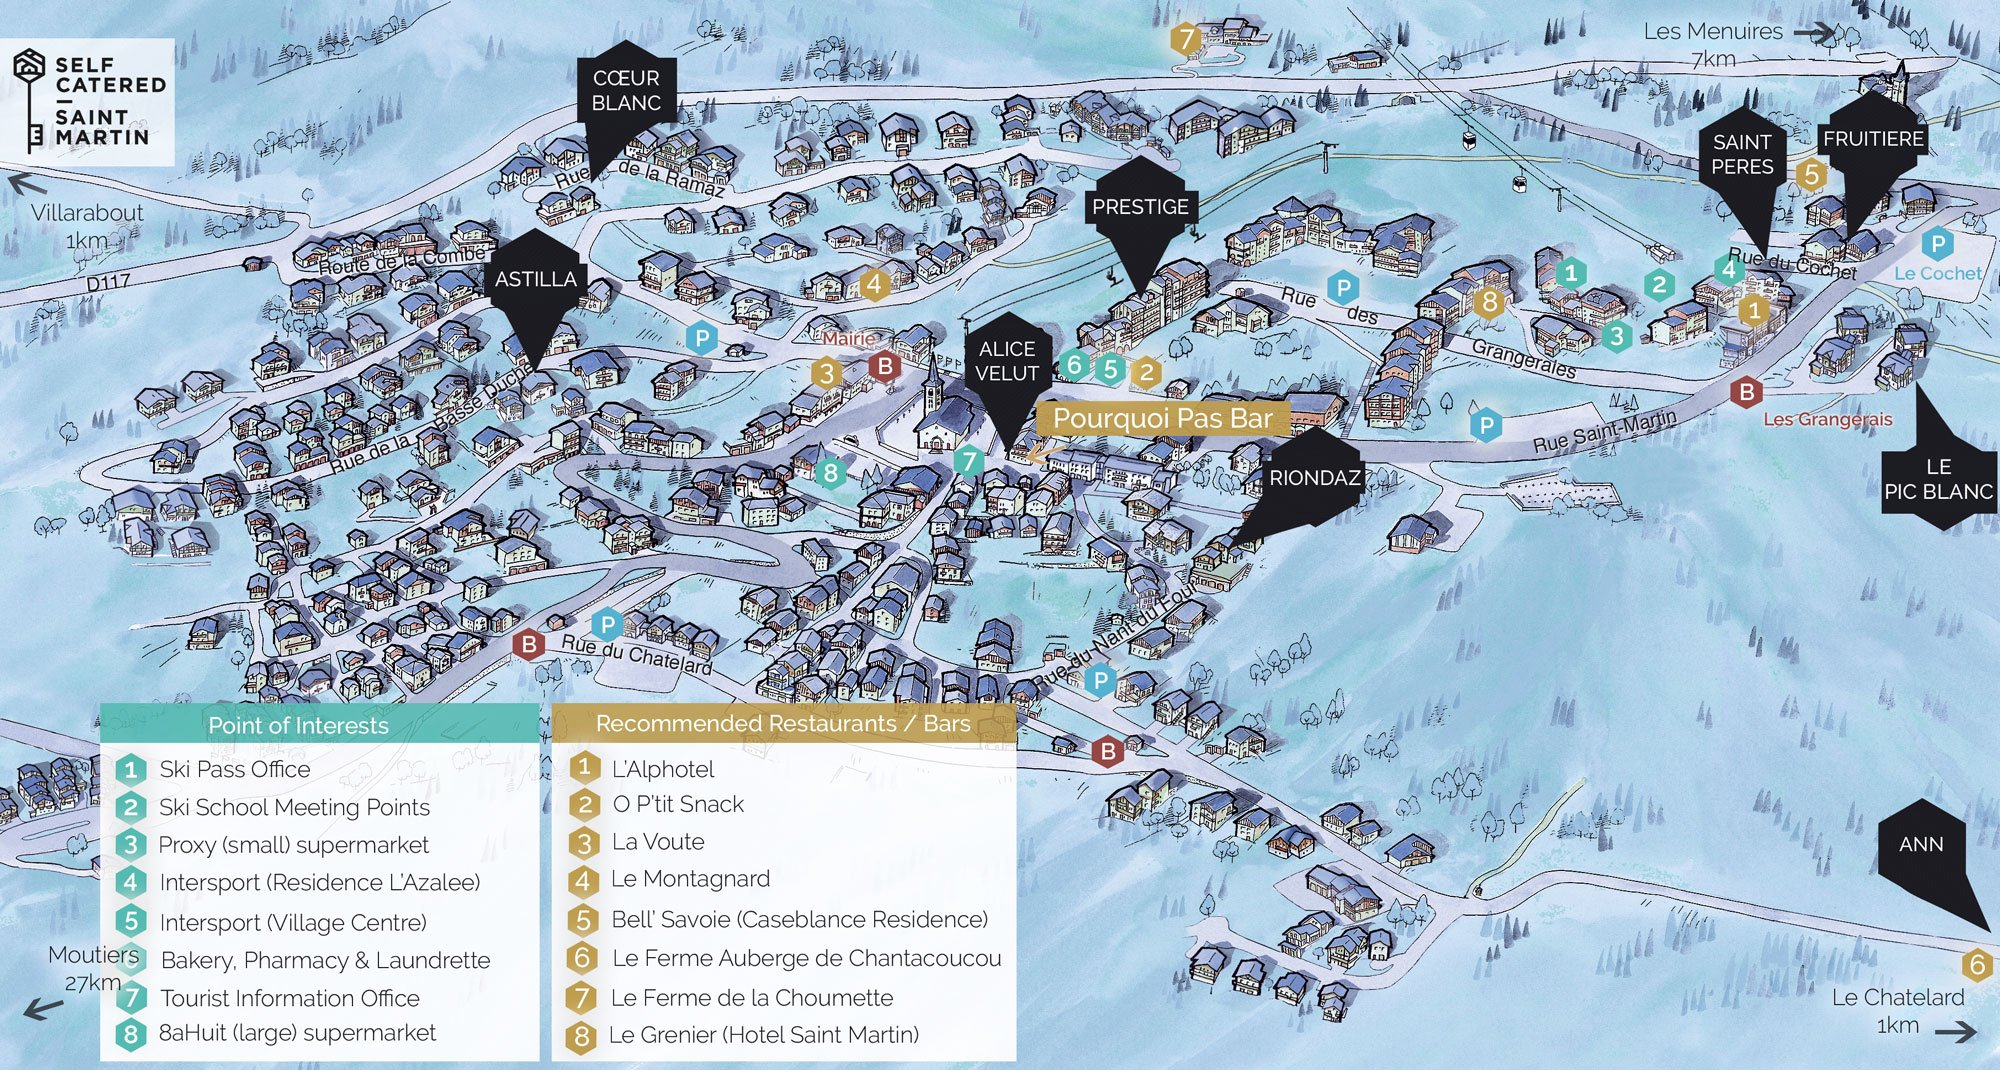 Saint Martin de Belleville resort map with self-catered chalets